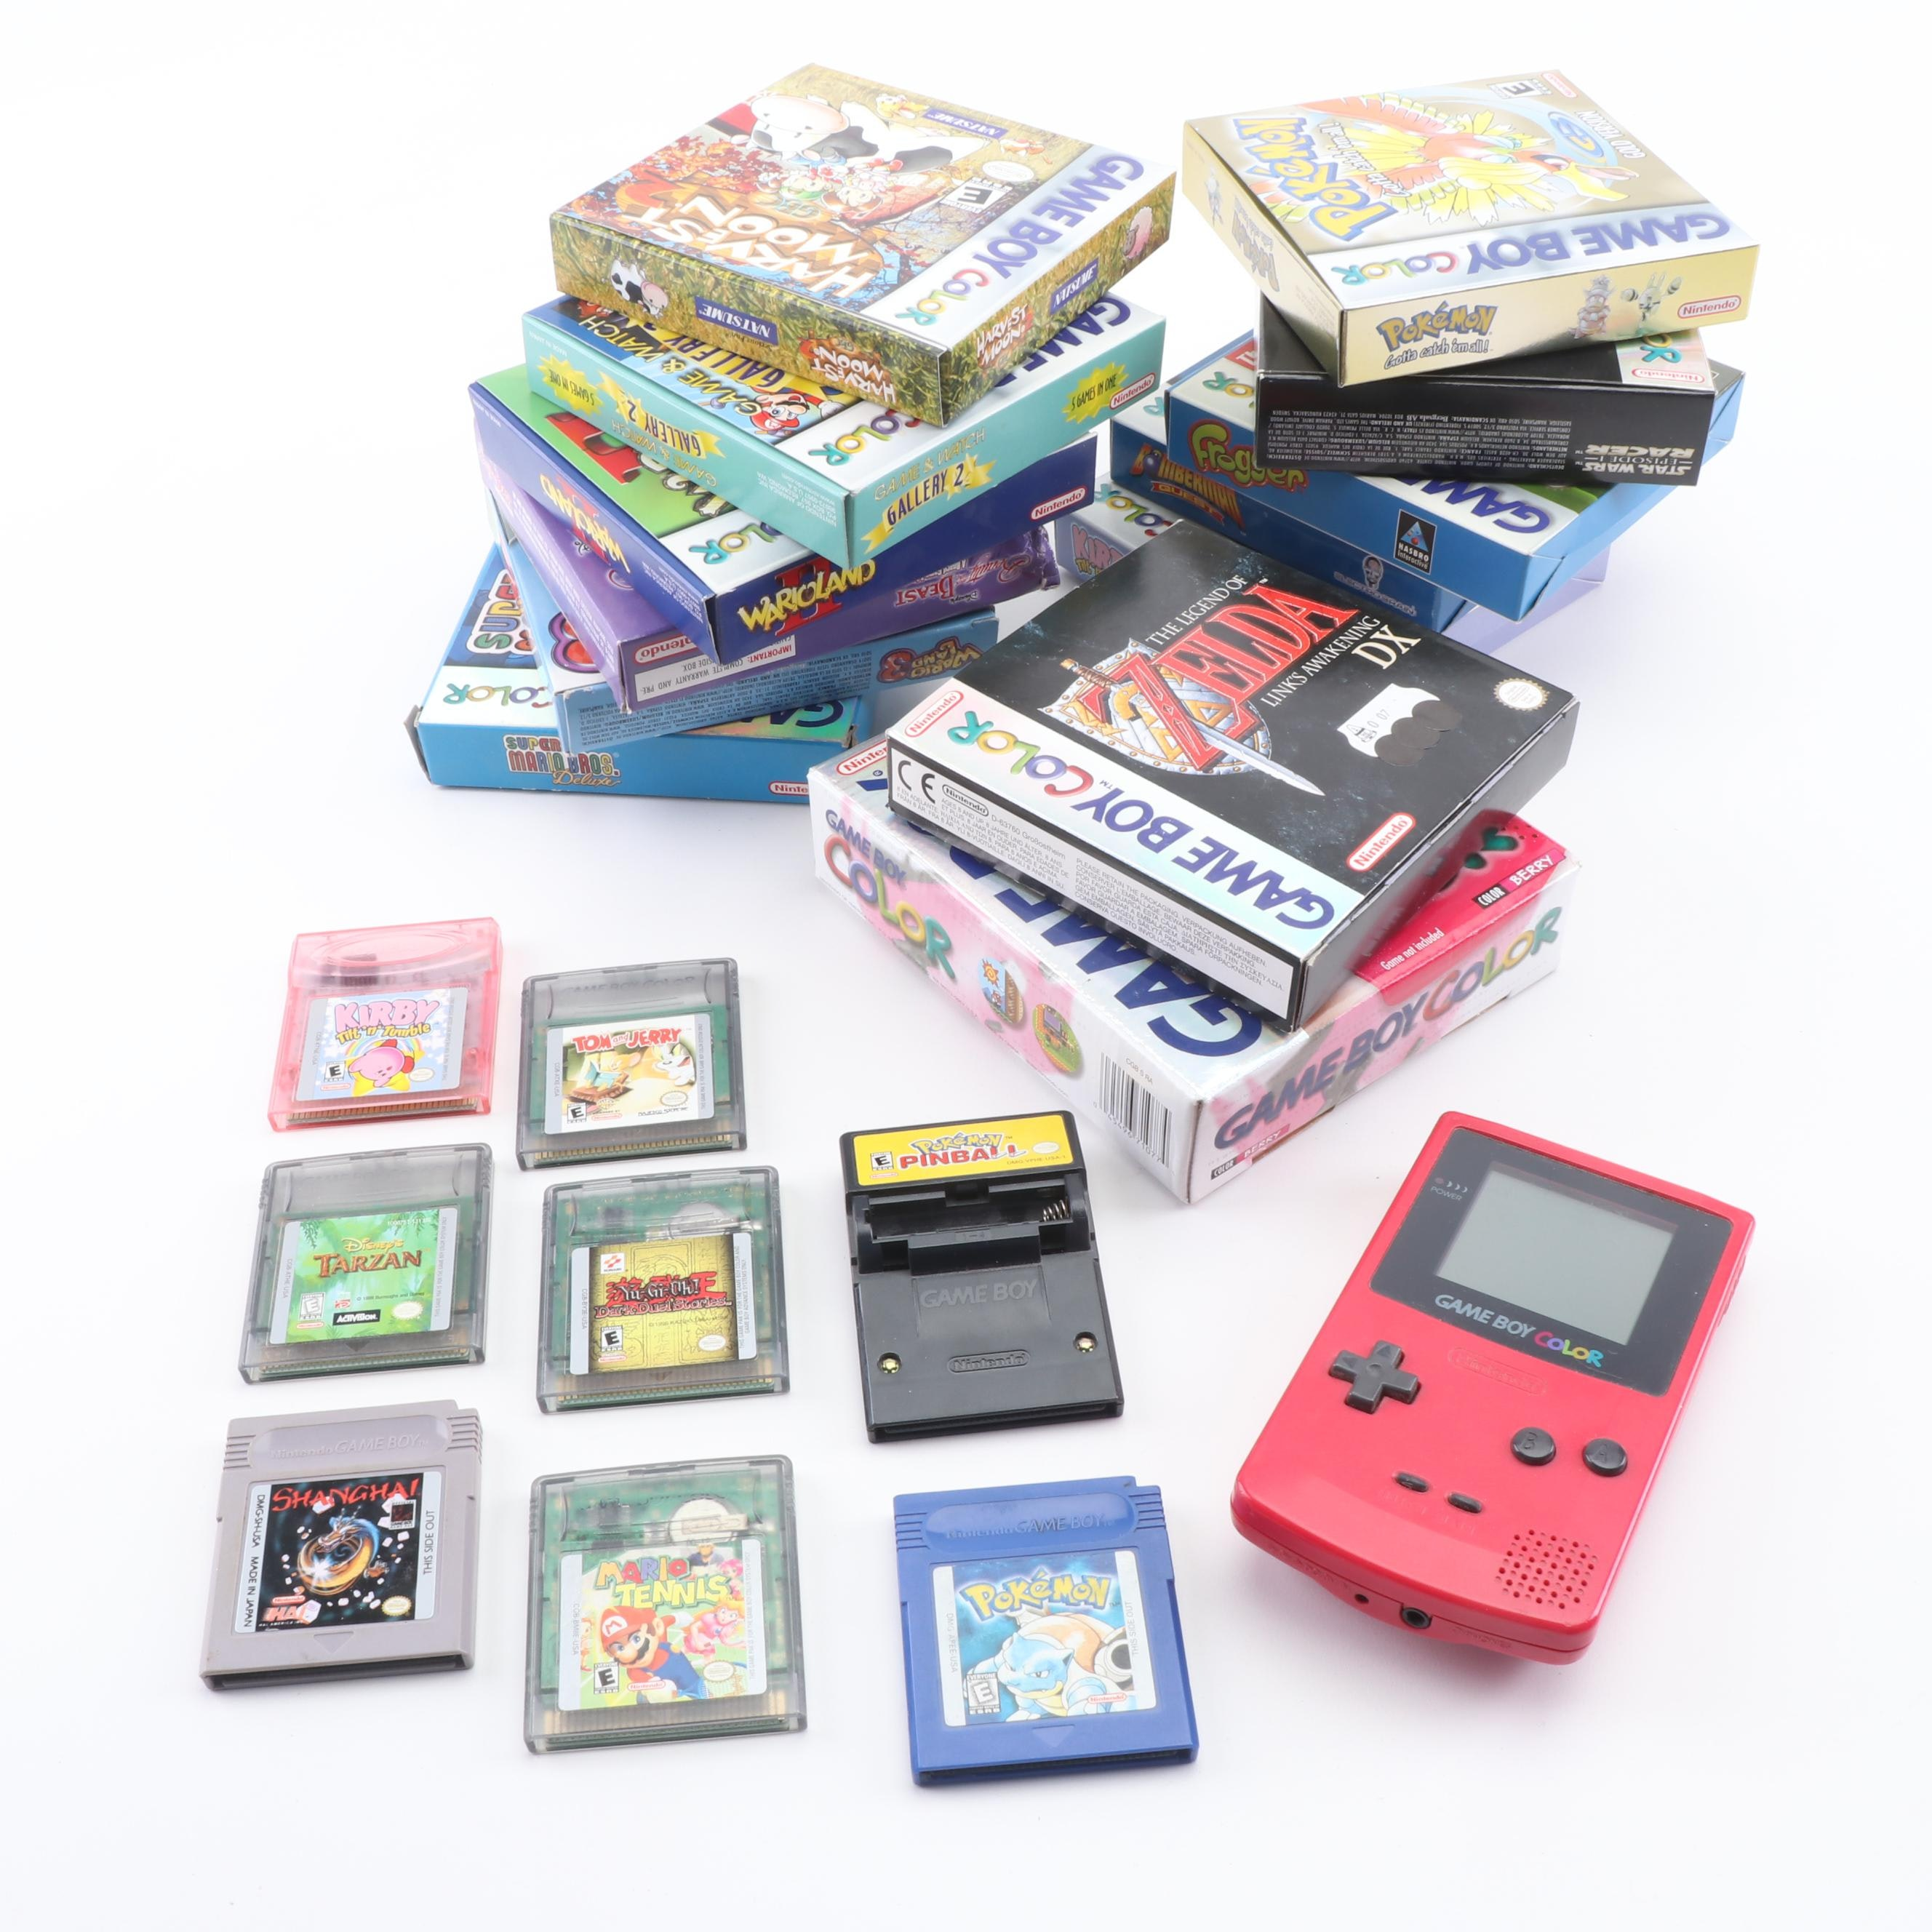 Nintendo Game Boy Color with 11 Games featuring Pokémon Blue